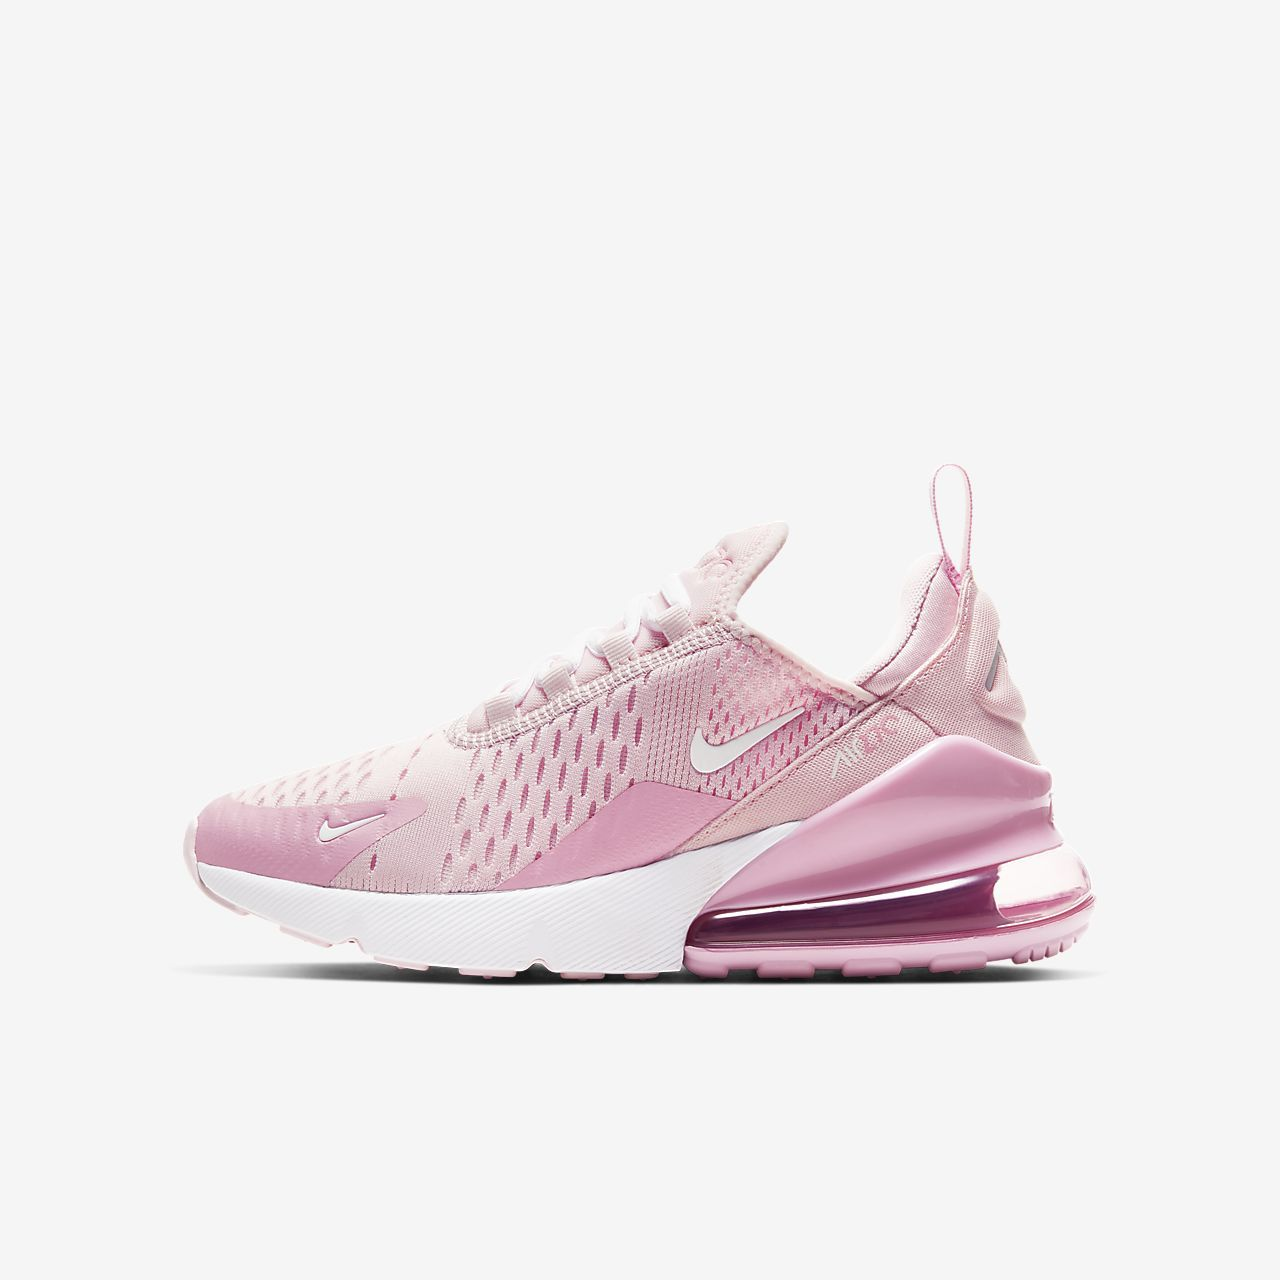 otro Humanista cable  Nike Air Max 270 Big Kids' Shoe. Nike.com in 2021 | Pink nike shoes, Cute  nike shoes, Colorful nike shoes